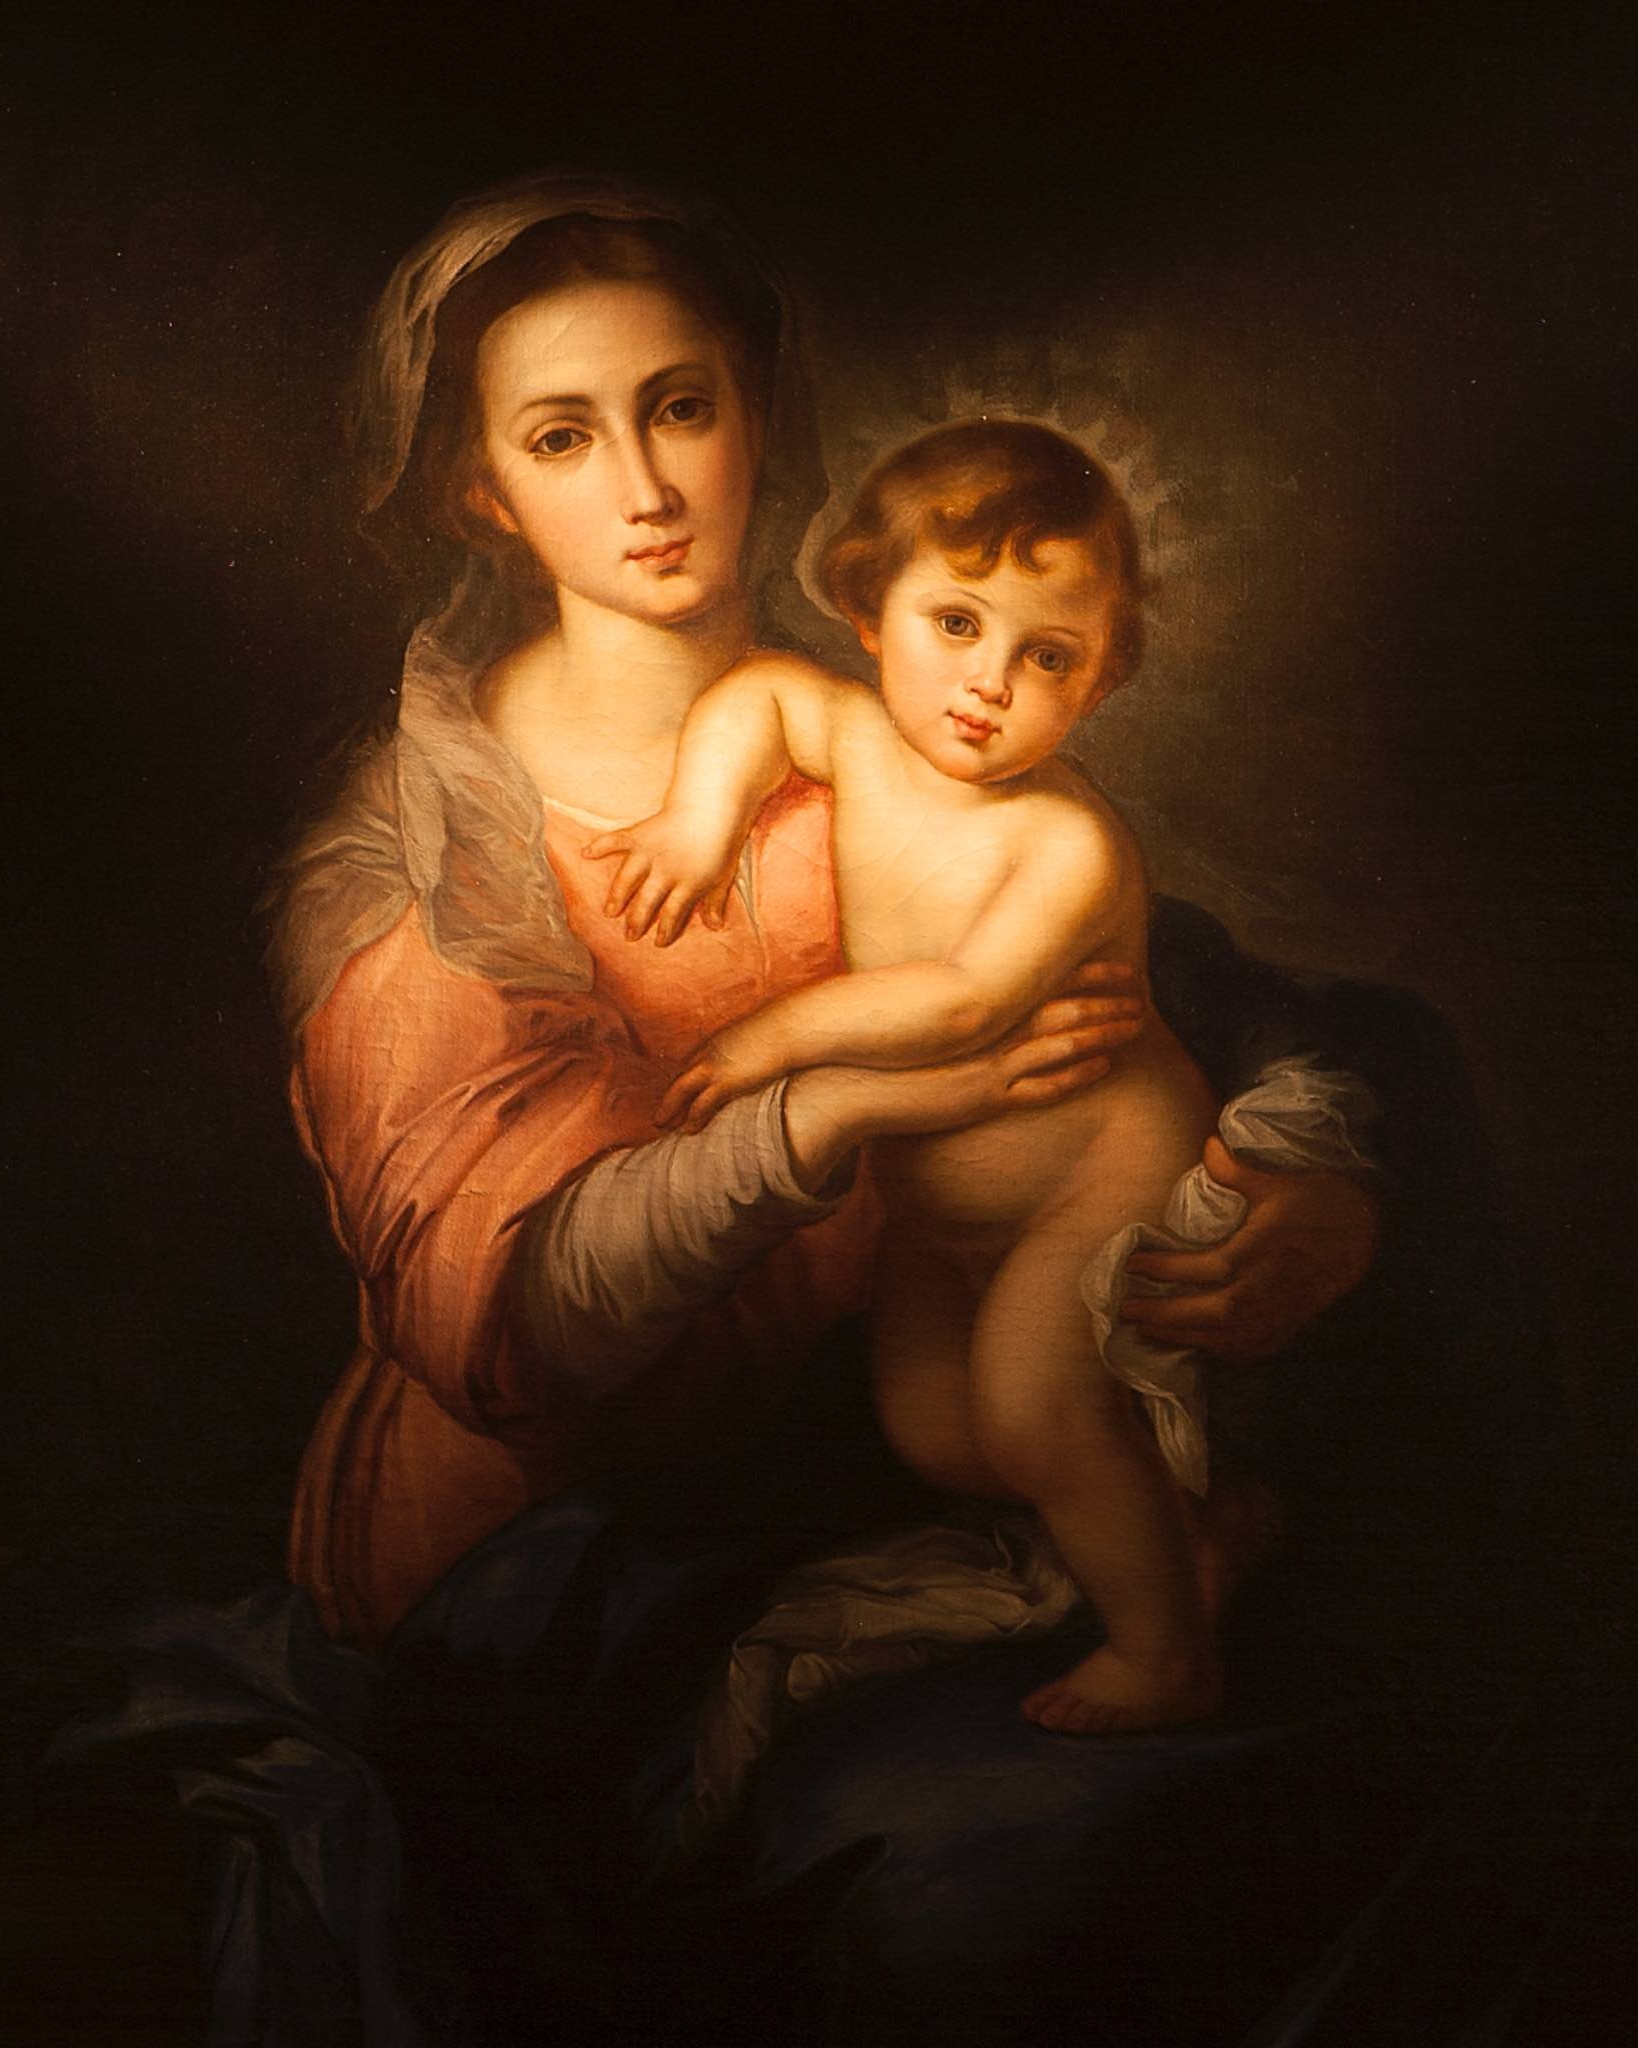 Madonna and Child - This painting, a gift of Canon de Zulueta's mother, the Countess of Torre Dias, is a copy believed to be from the school of Murillo.  The original hangs in the Galeria Corsini in Rome.